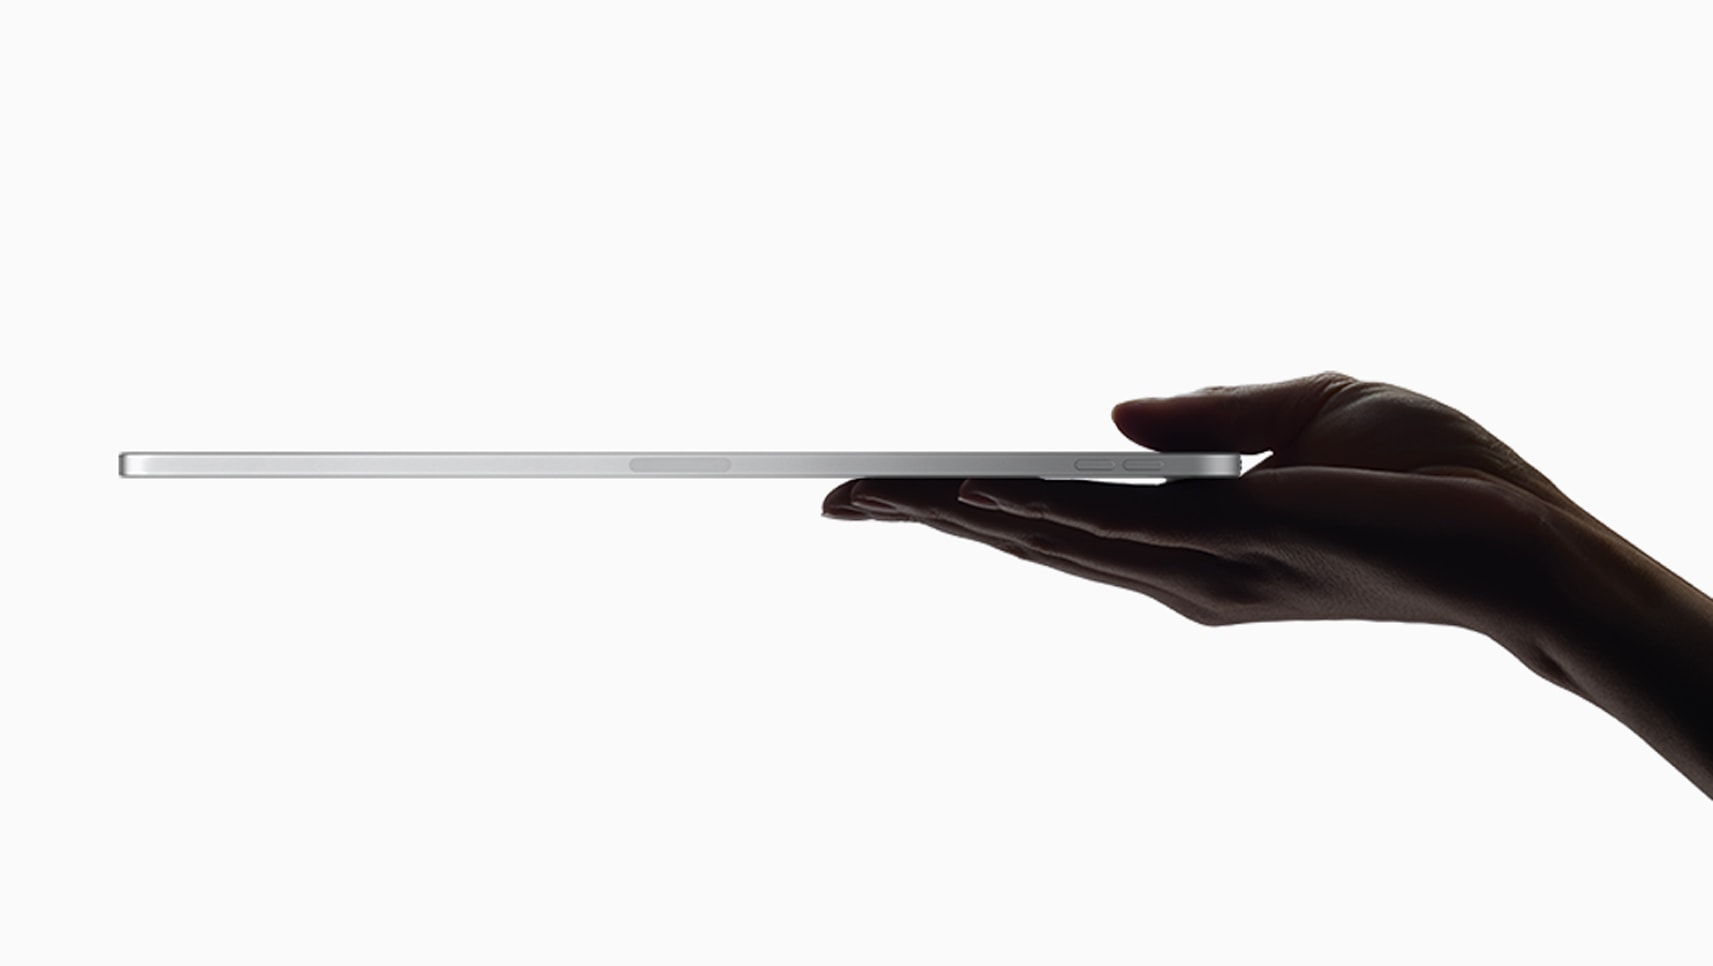 The new 2018 iPad Pro is Apple's thinnest tablet yet.